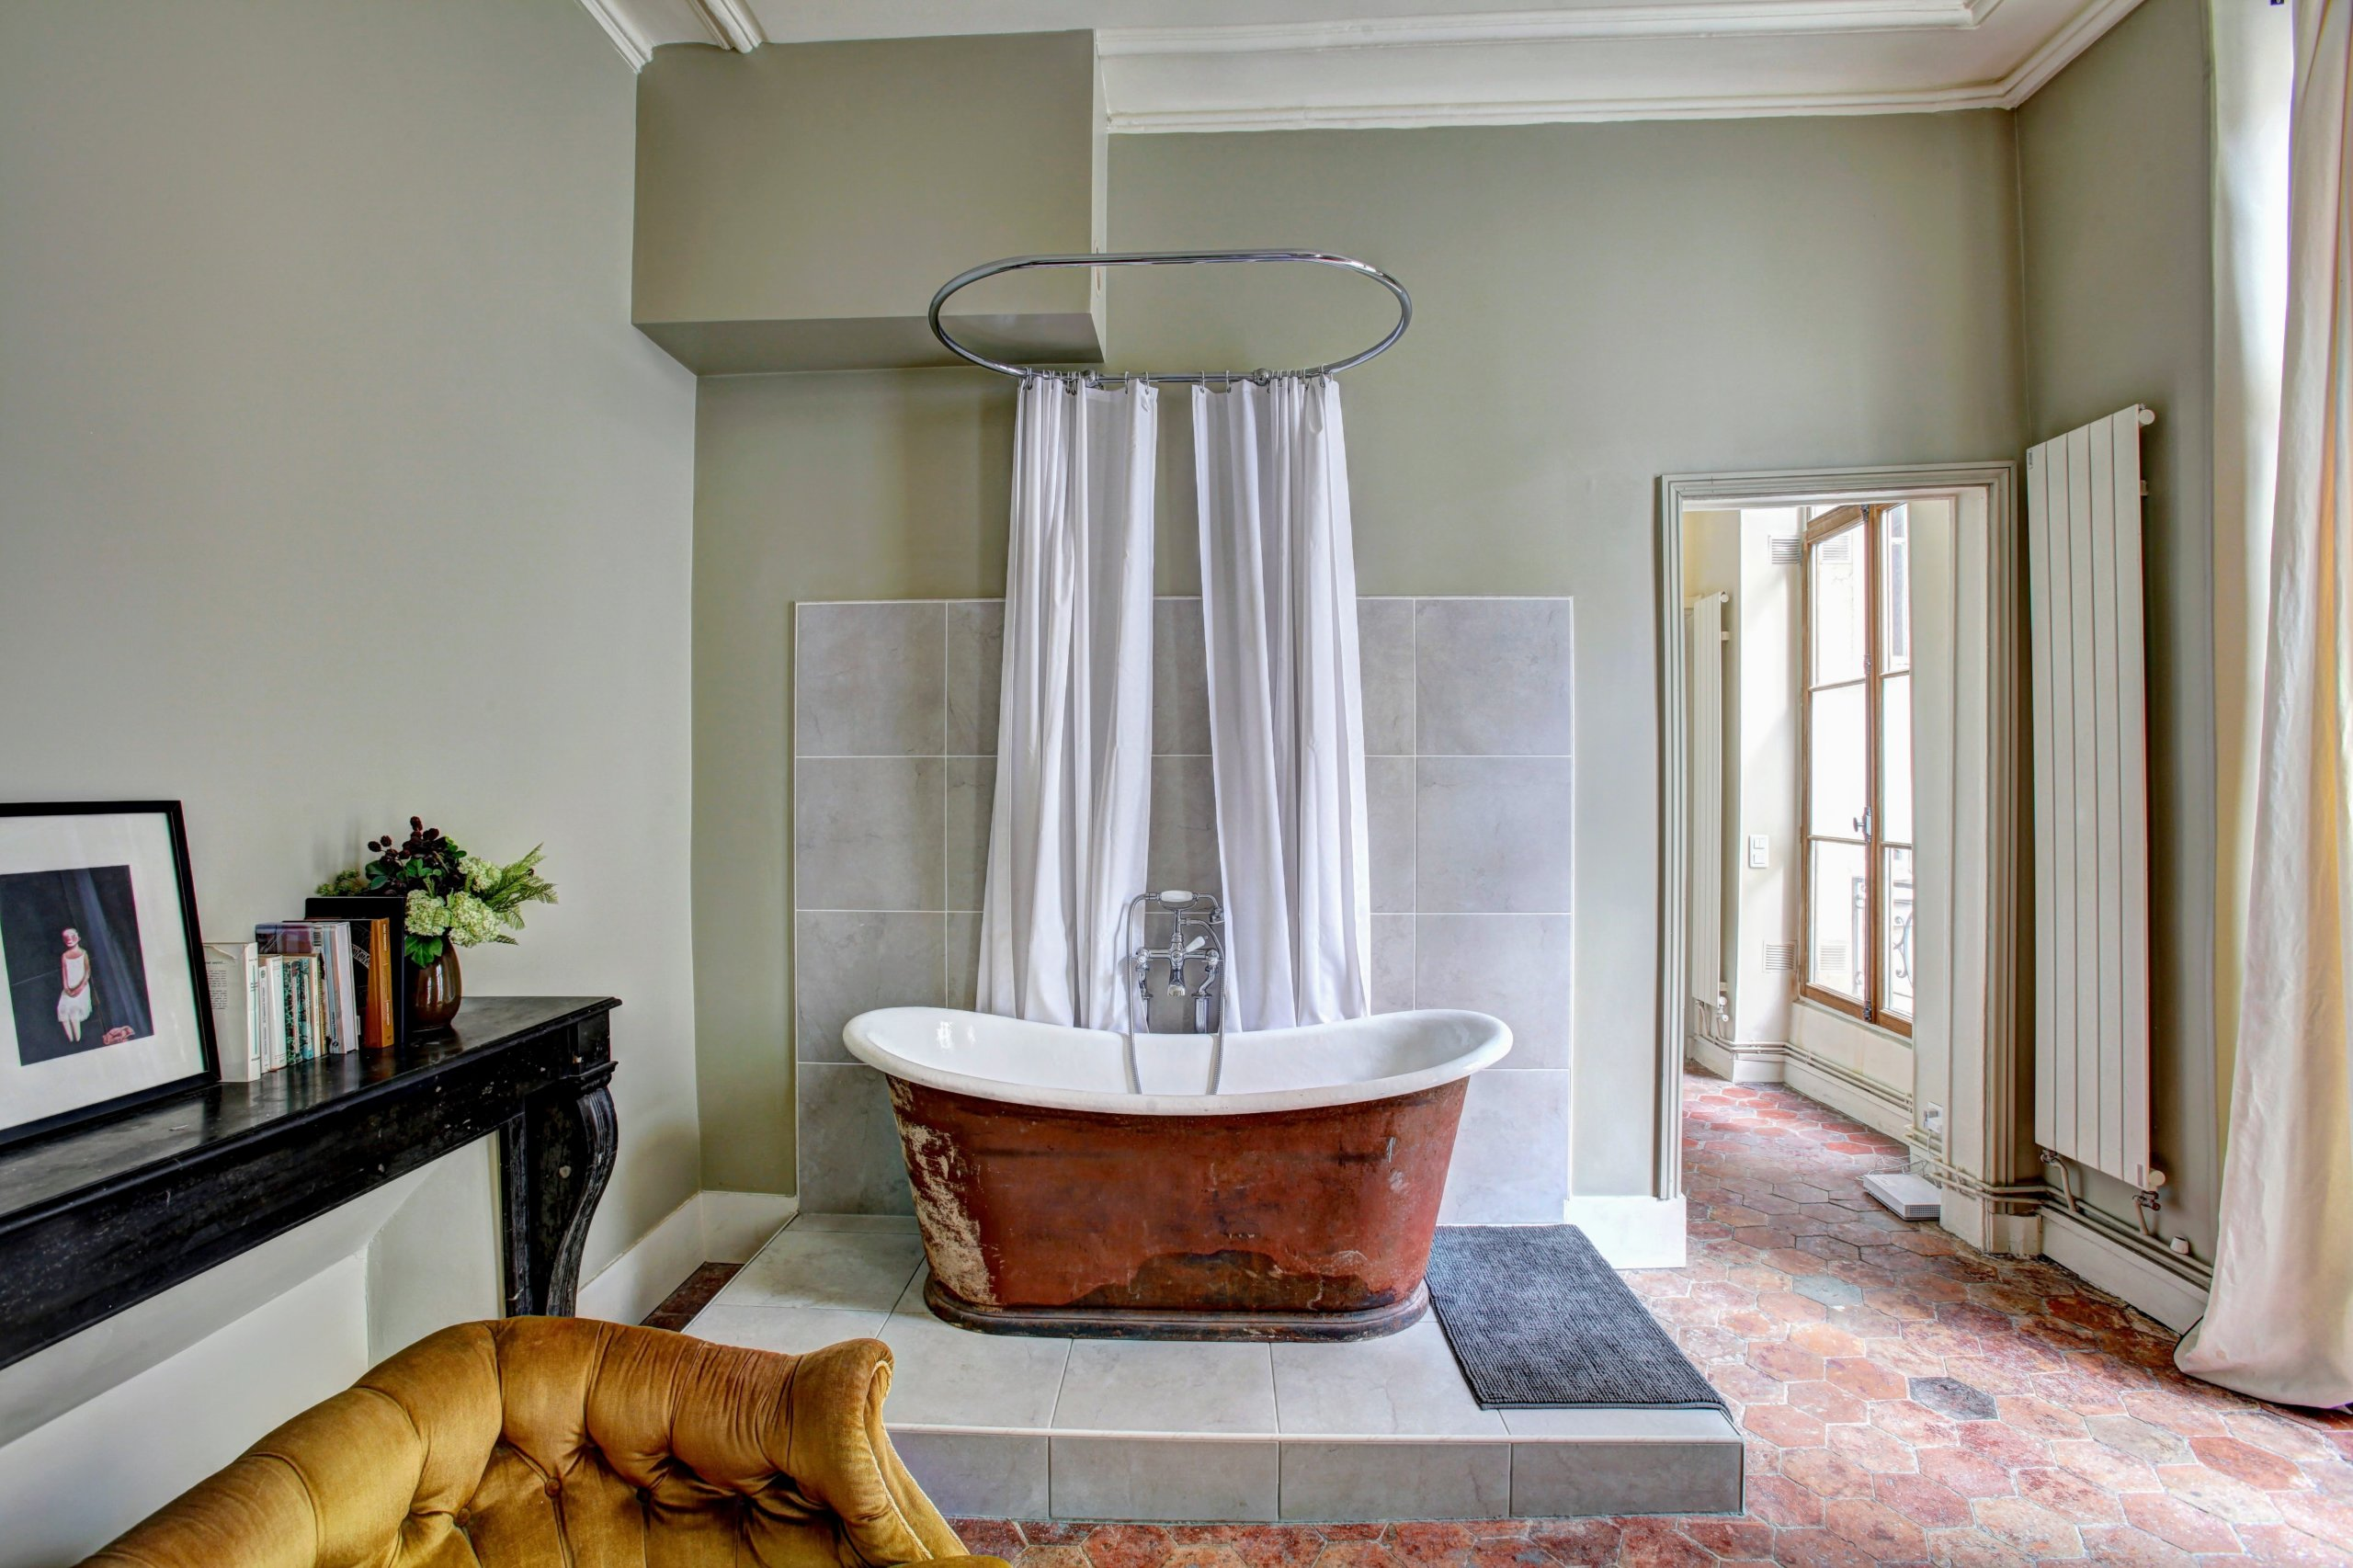 White and brown bath tub on top of elevated tile floor